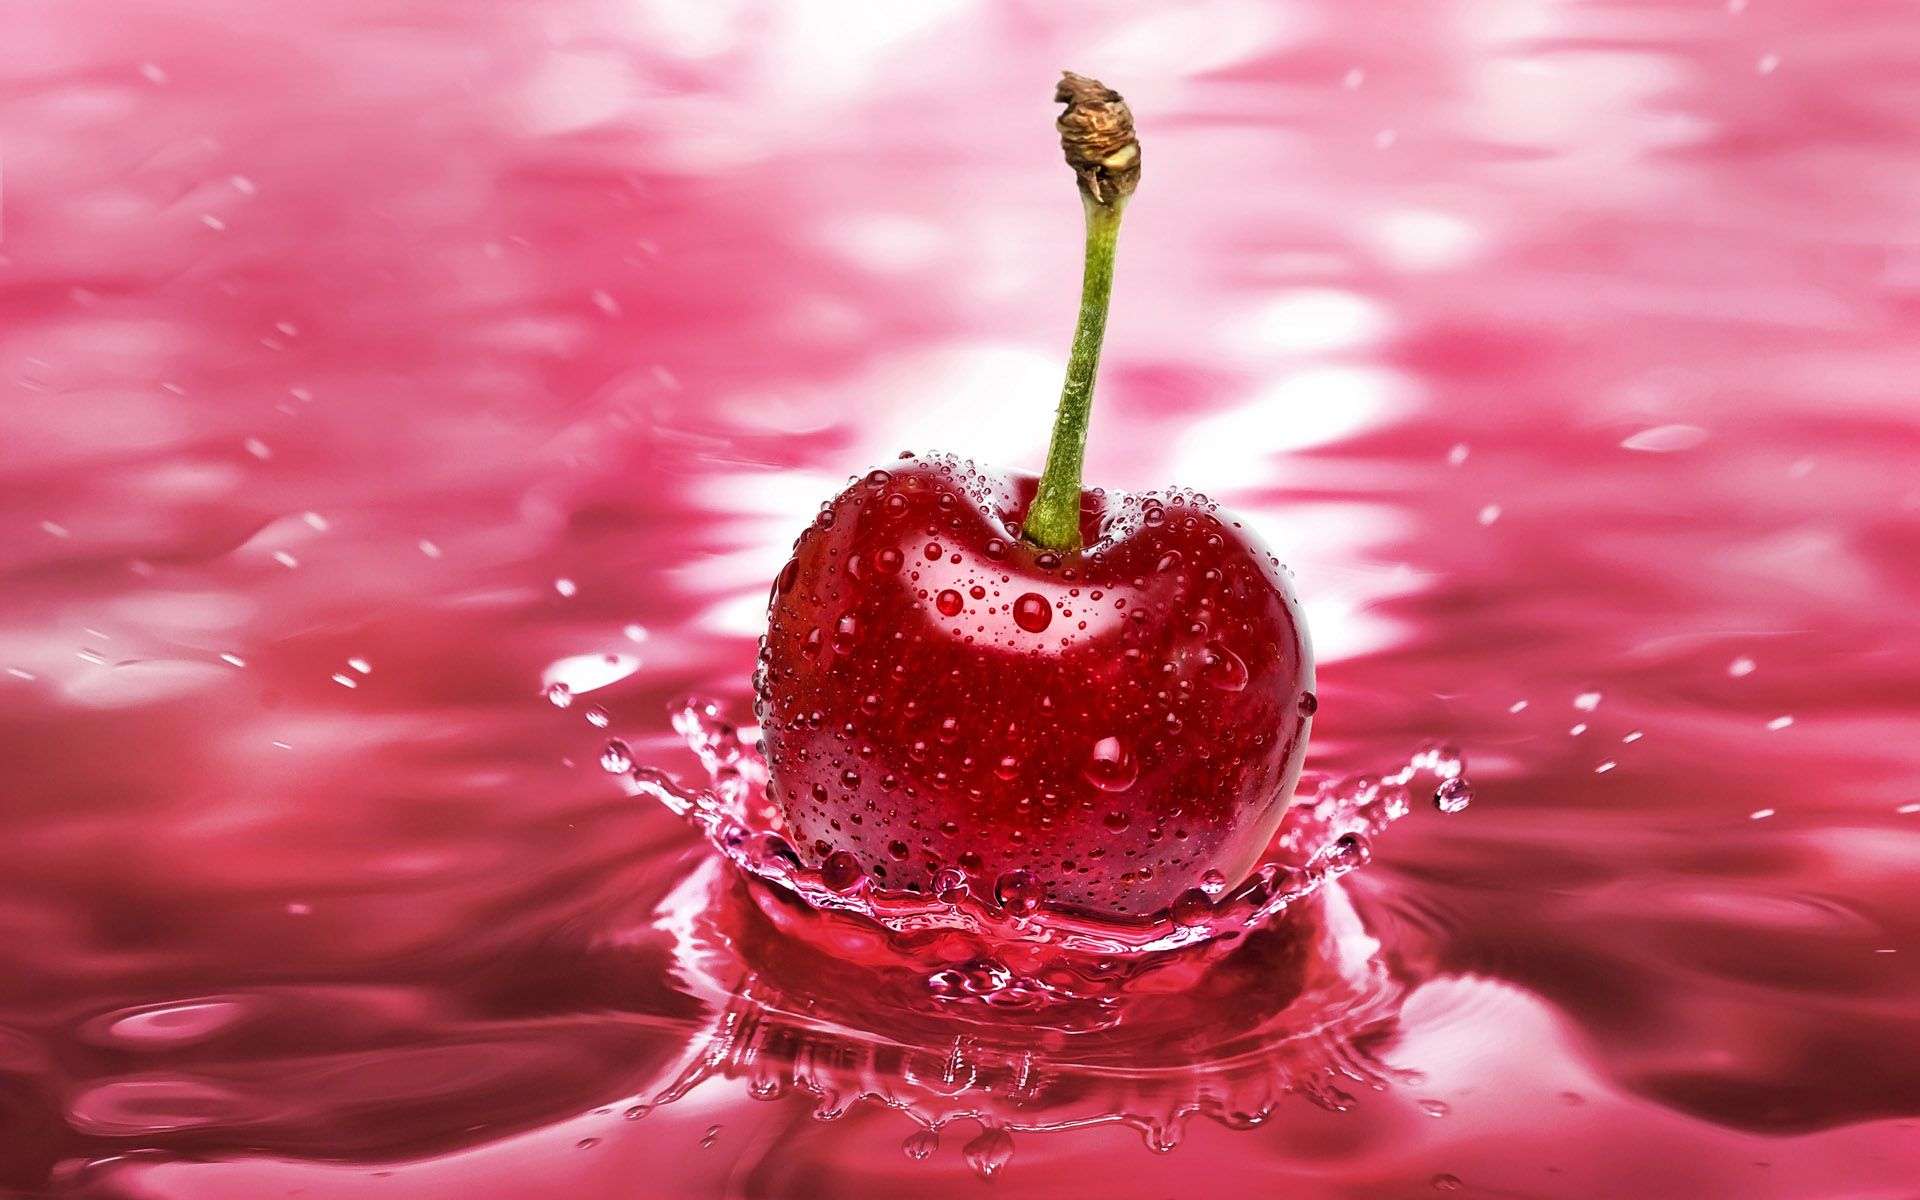 Fruits hd images - Images 3d Hd Hd Fresh Apple 3d Wallpaper